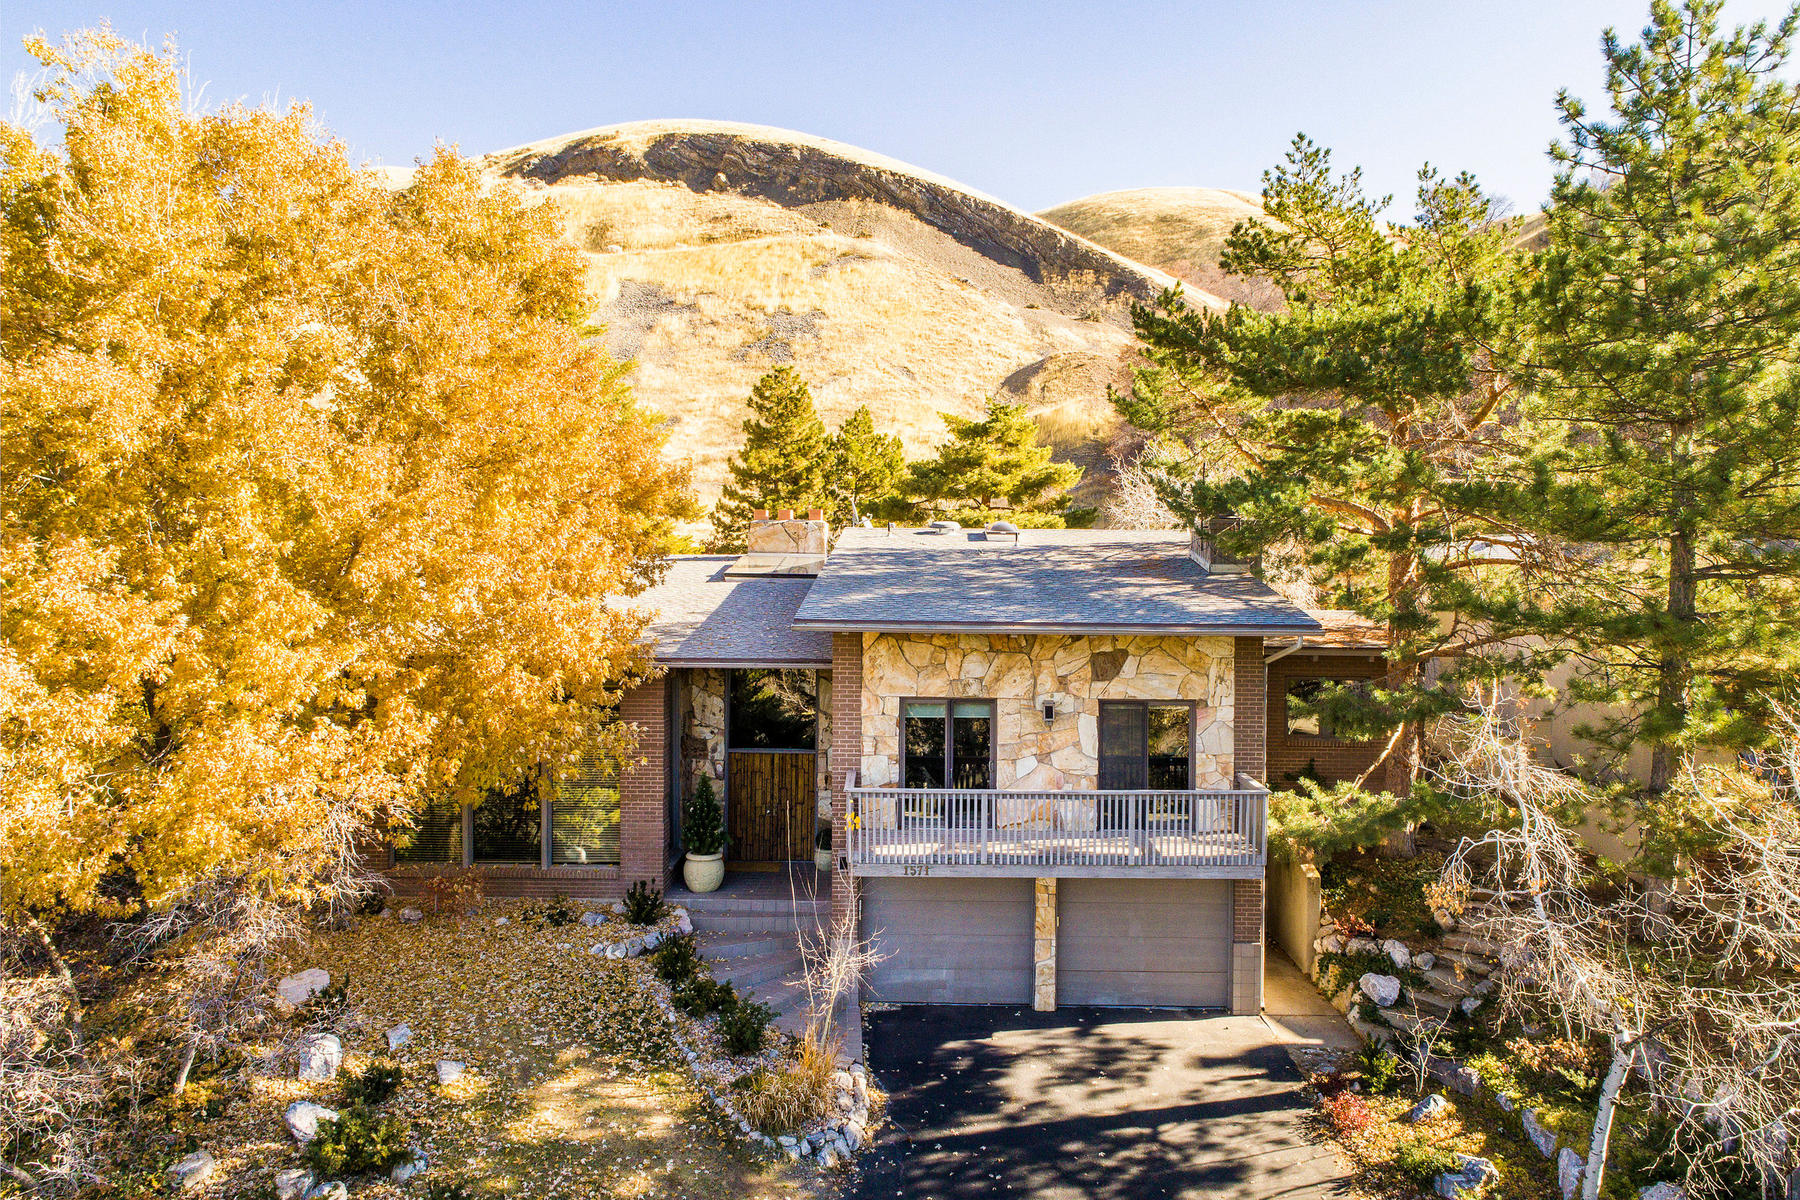 Single Family Home for Sale at Mid-Century Modern Home in Arlington Hills 1571 E. Tomahawk Dr., Salt Lake City, Utah 84103 United States